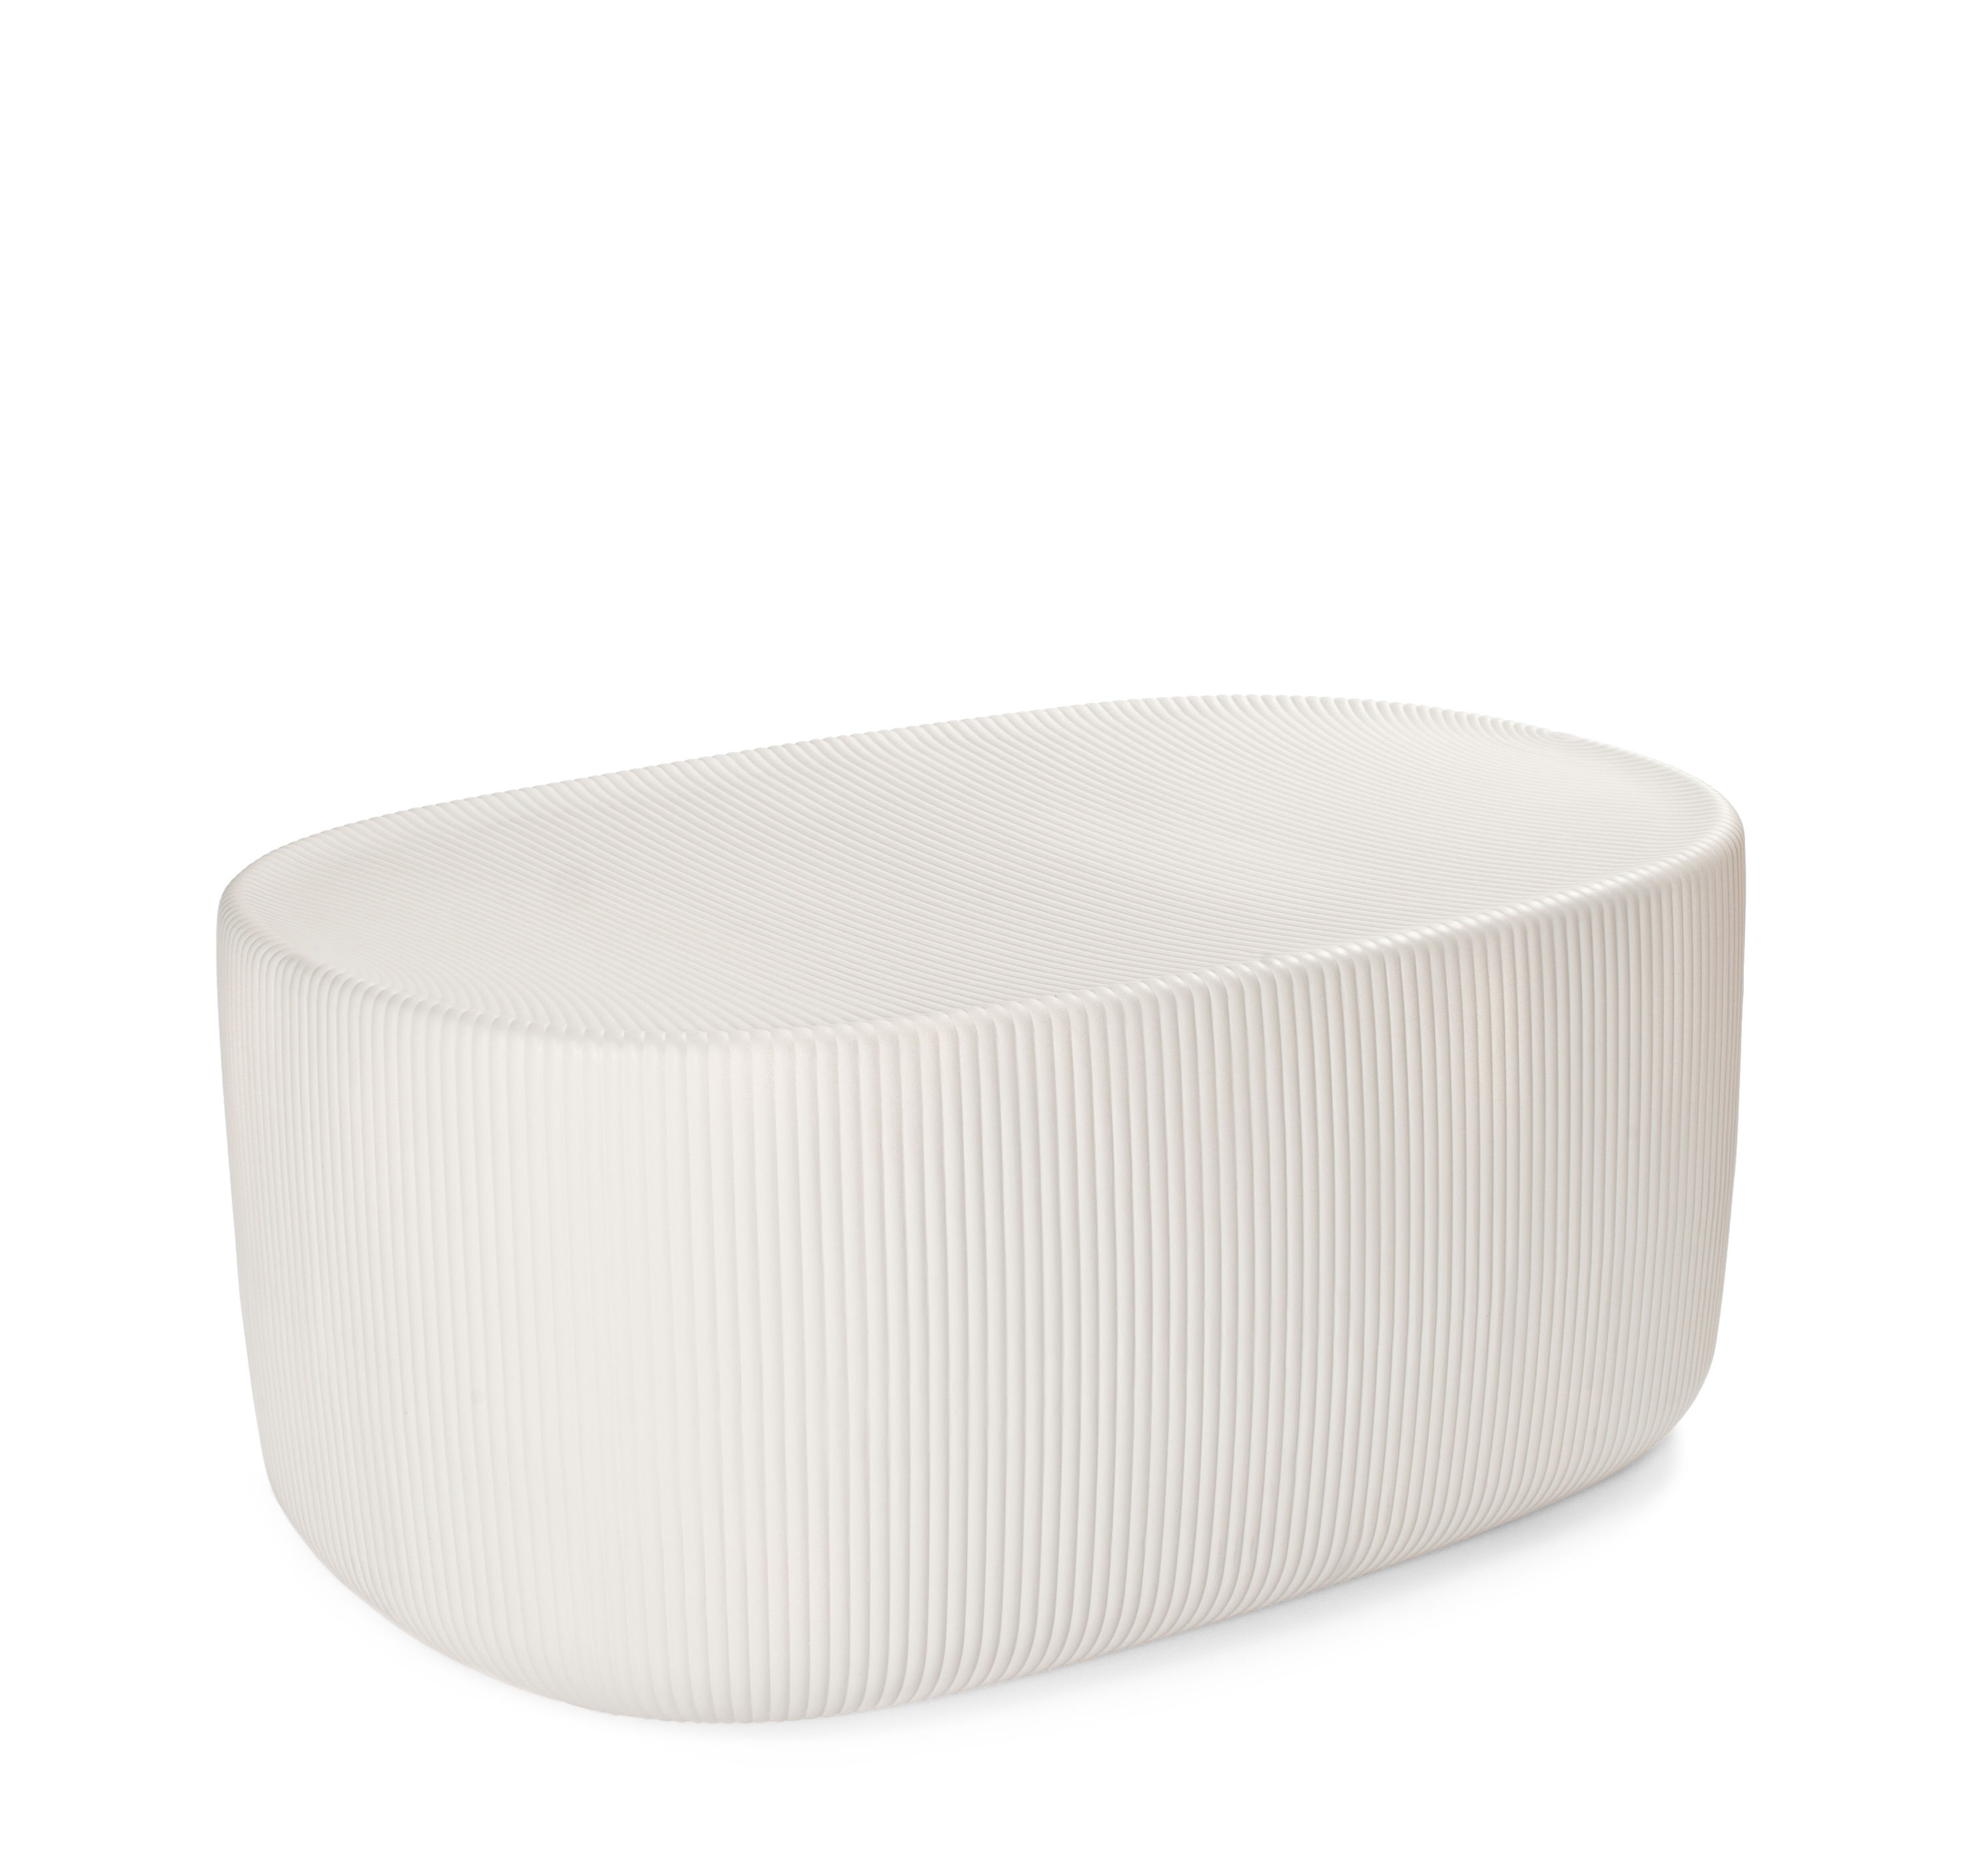 Furniture - Coffee Tables - Touch Large End table - / L 57 x H 26 cm - Ceramic by Moustache - Light grey - Glazed ceramic